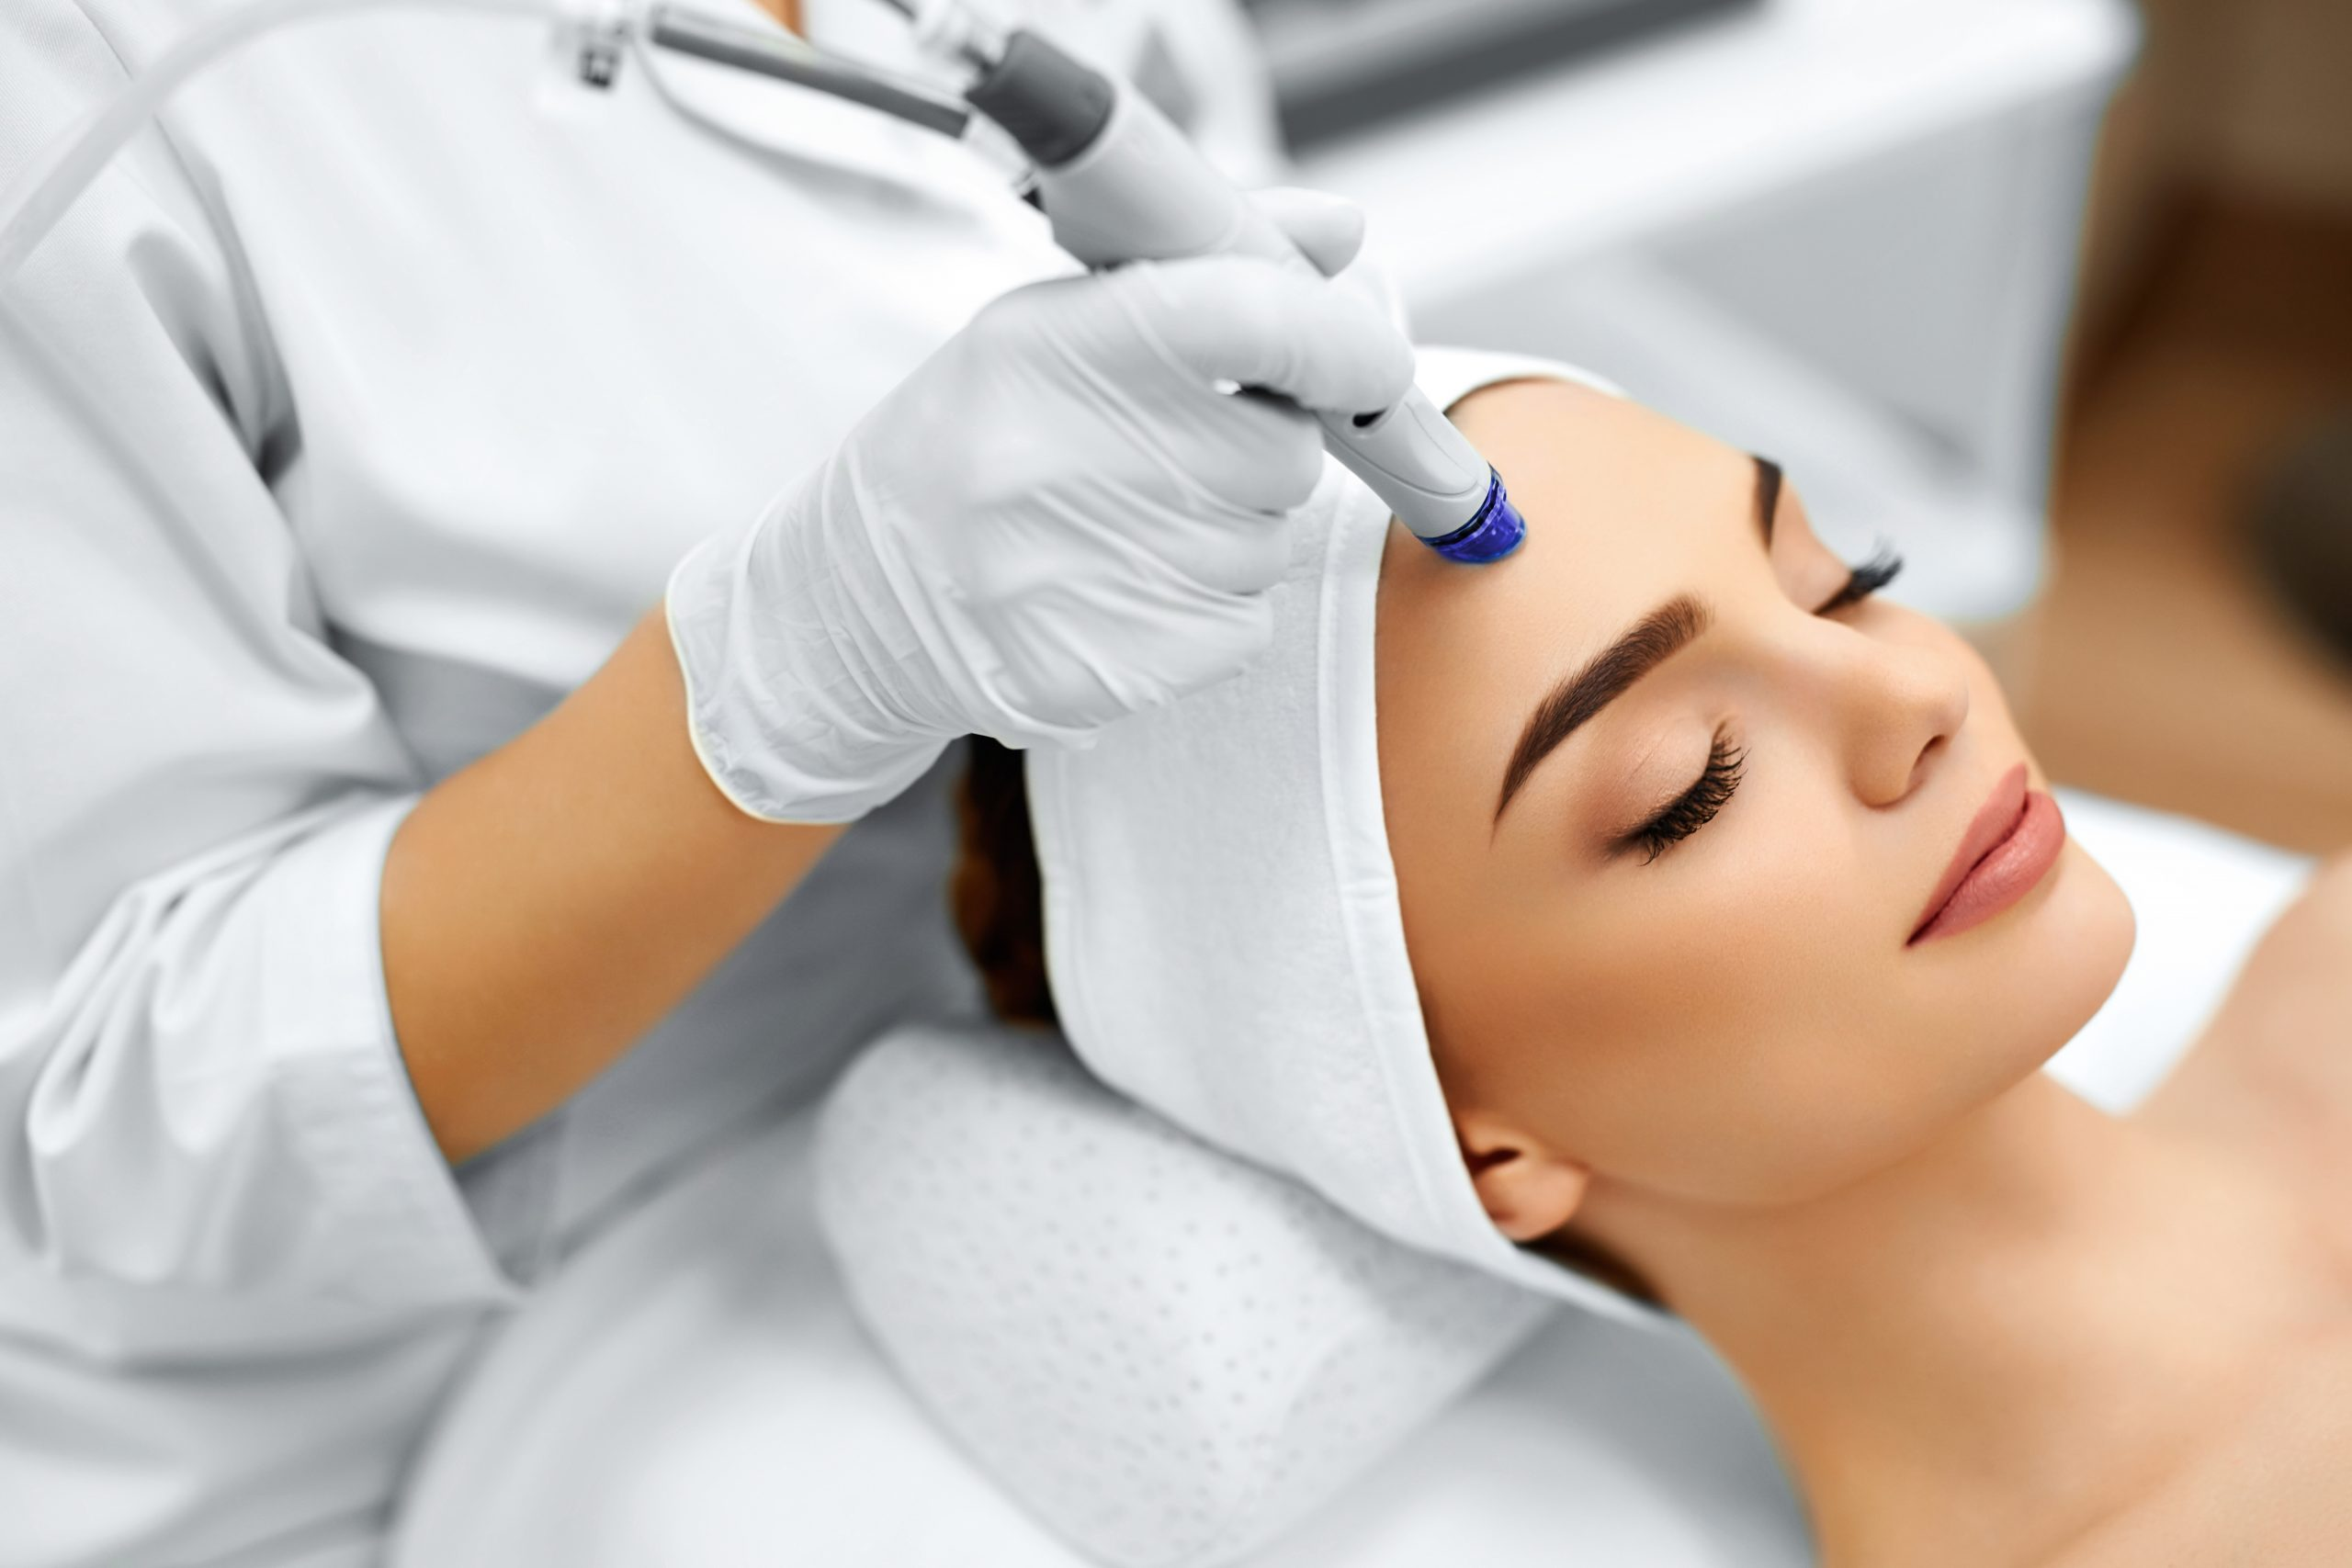 Popular Non-Surgical Procedures for the New Year